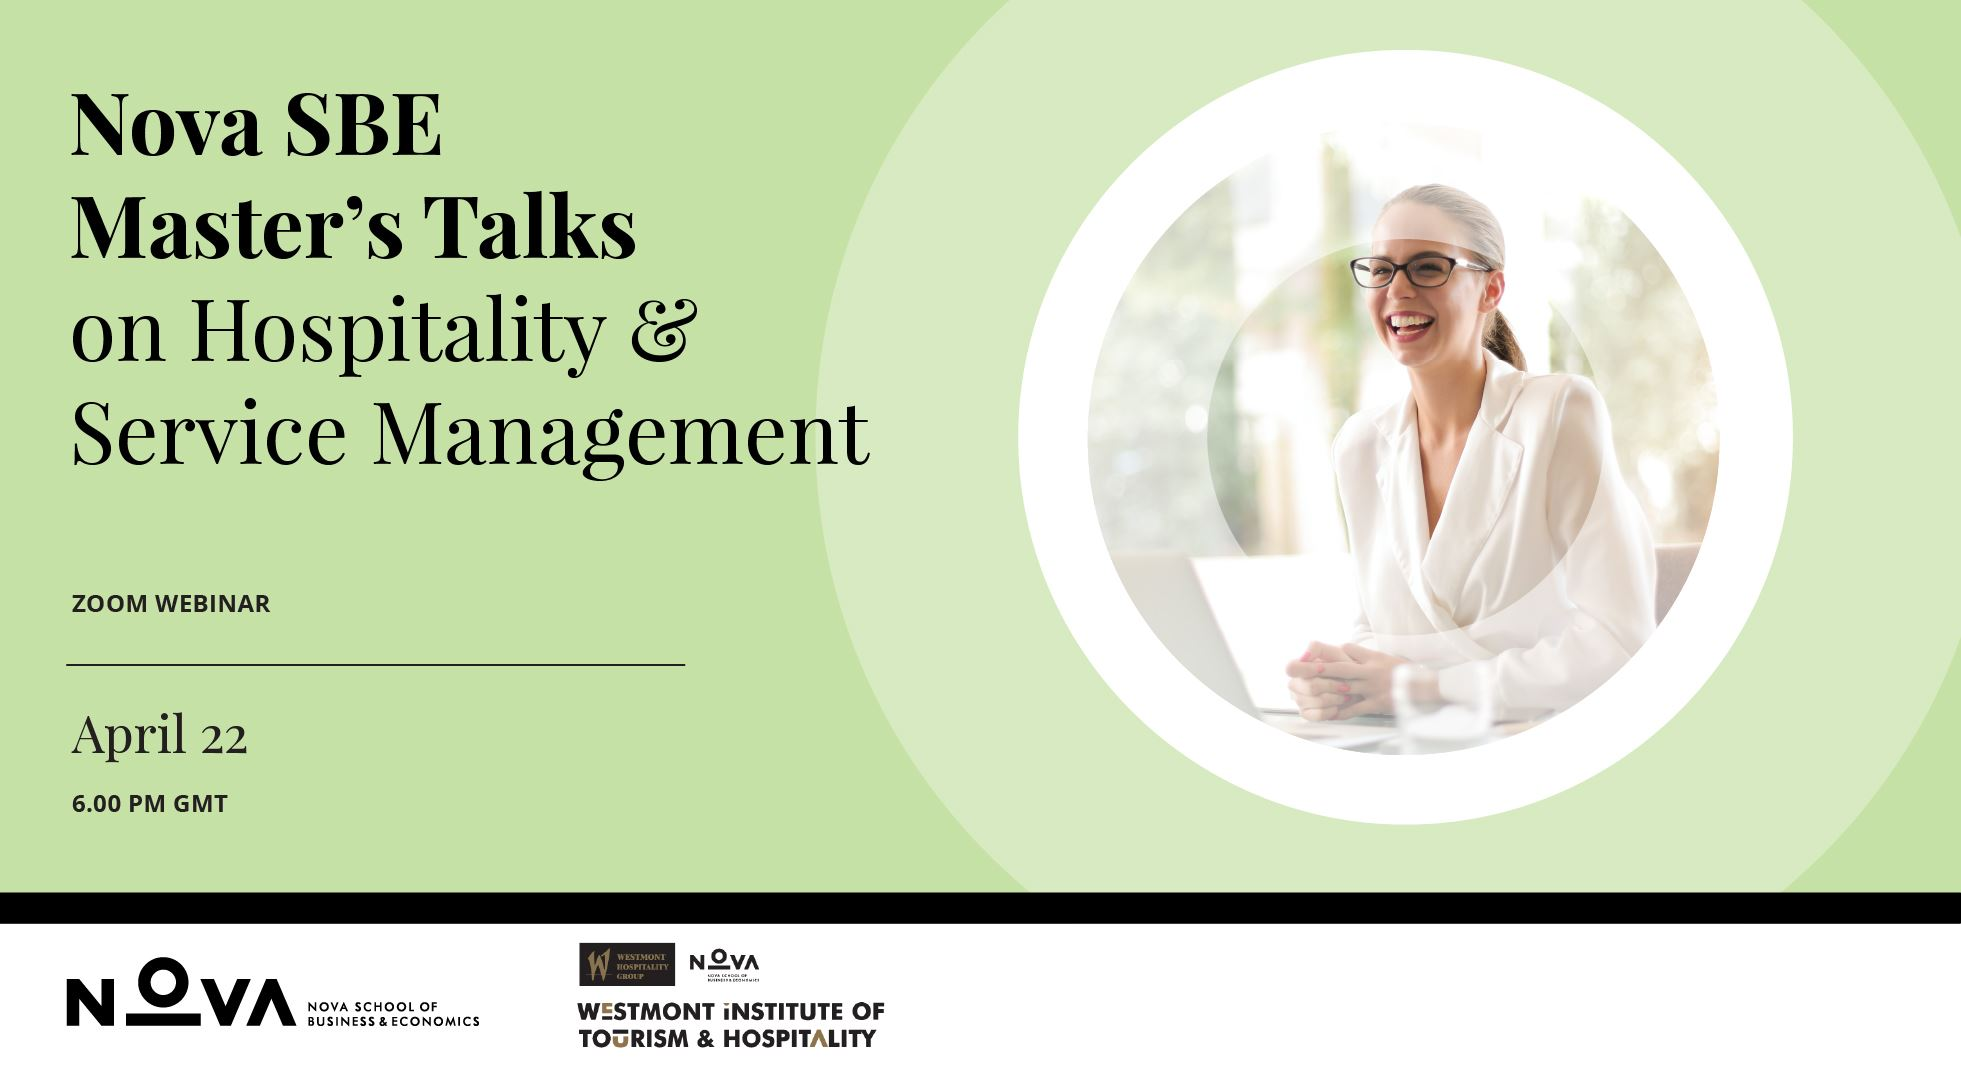 Master's Talks on Hospitality & Service Management